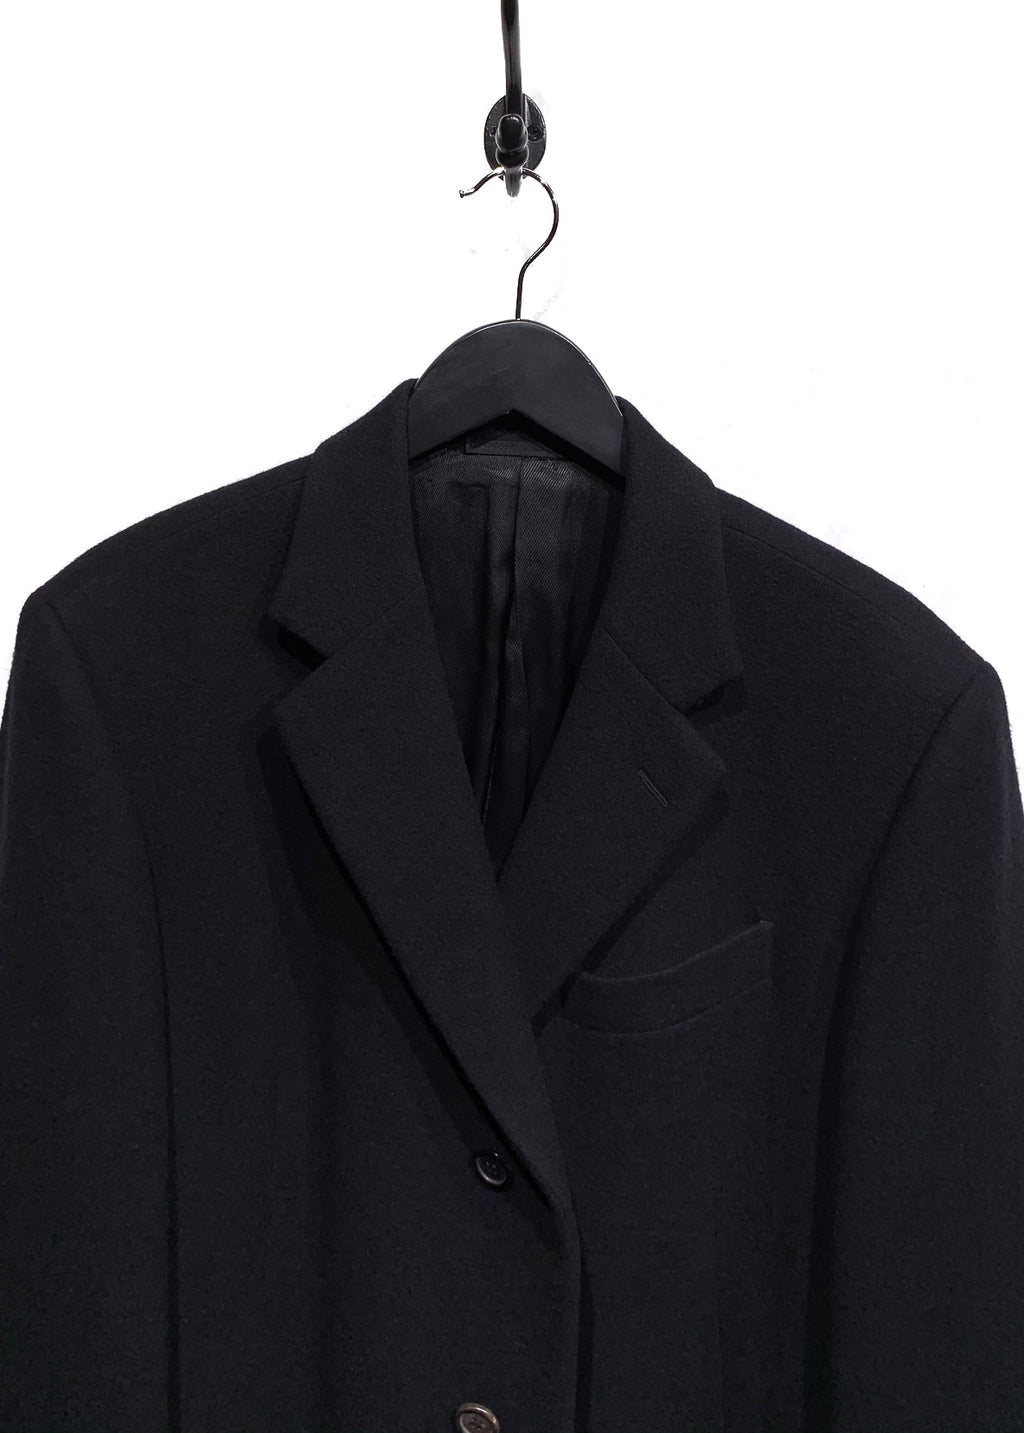 Prada Black Classic Wool Top Coat